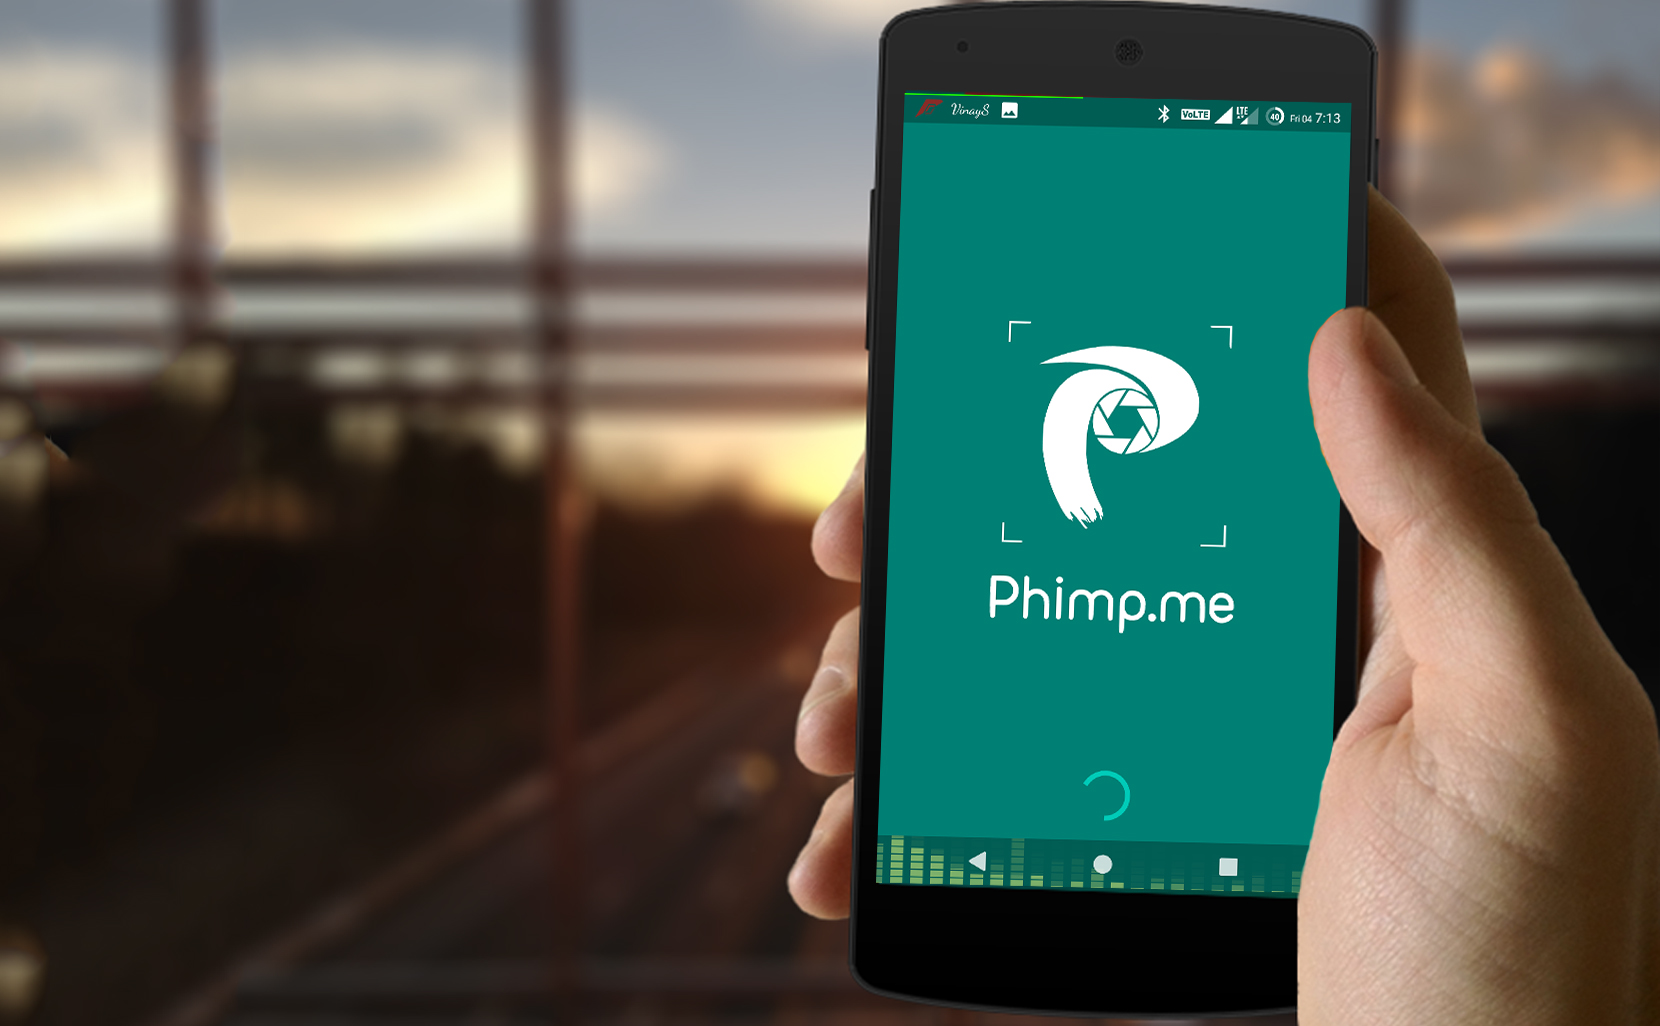 Displaying an Animated Image in Splash Screen of Phimpme Android